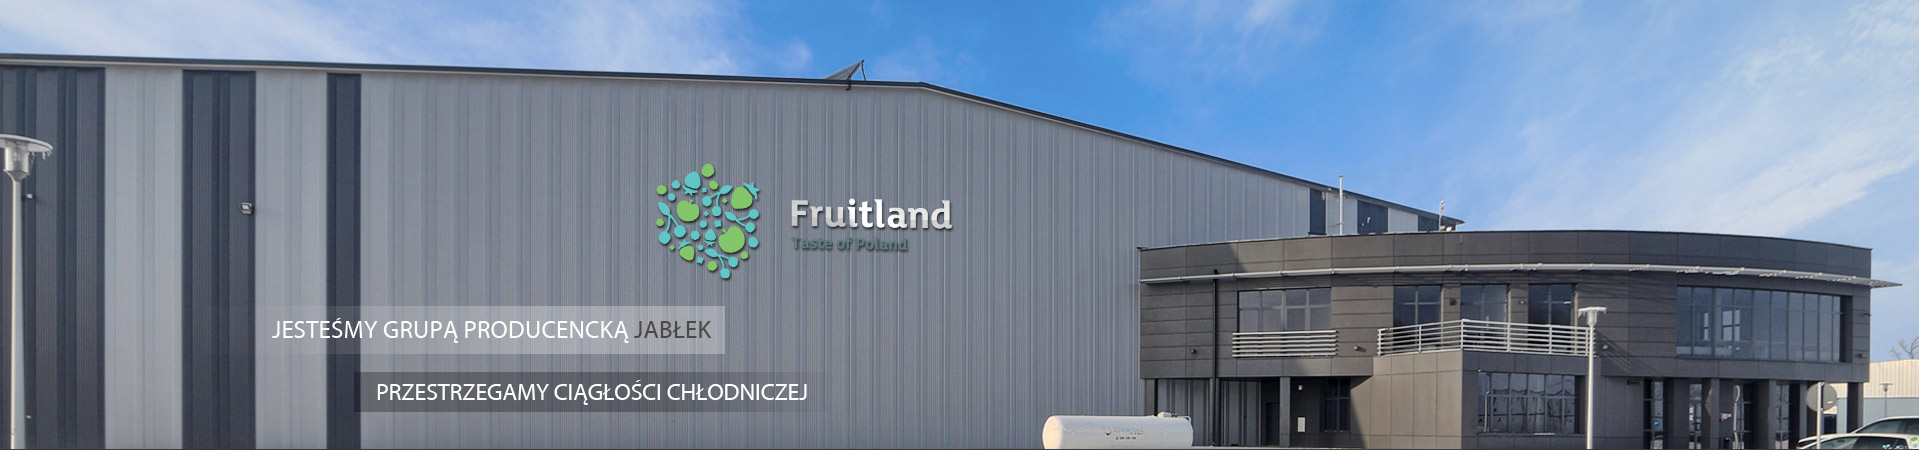 slide-fruitland1